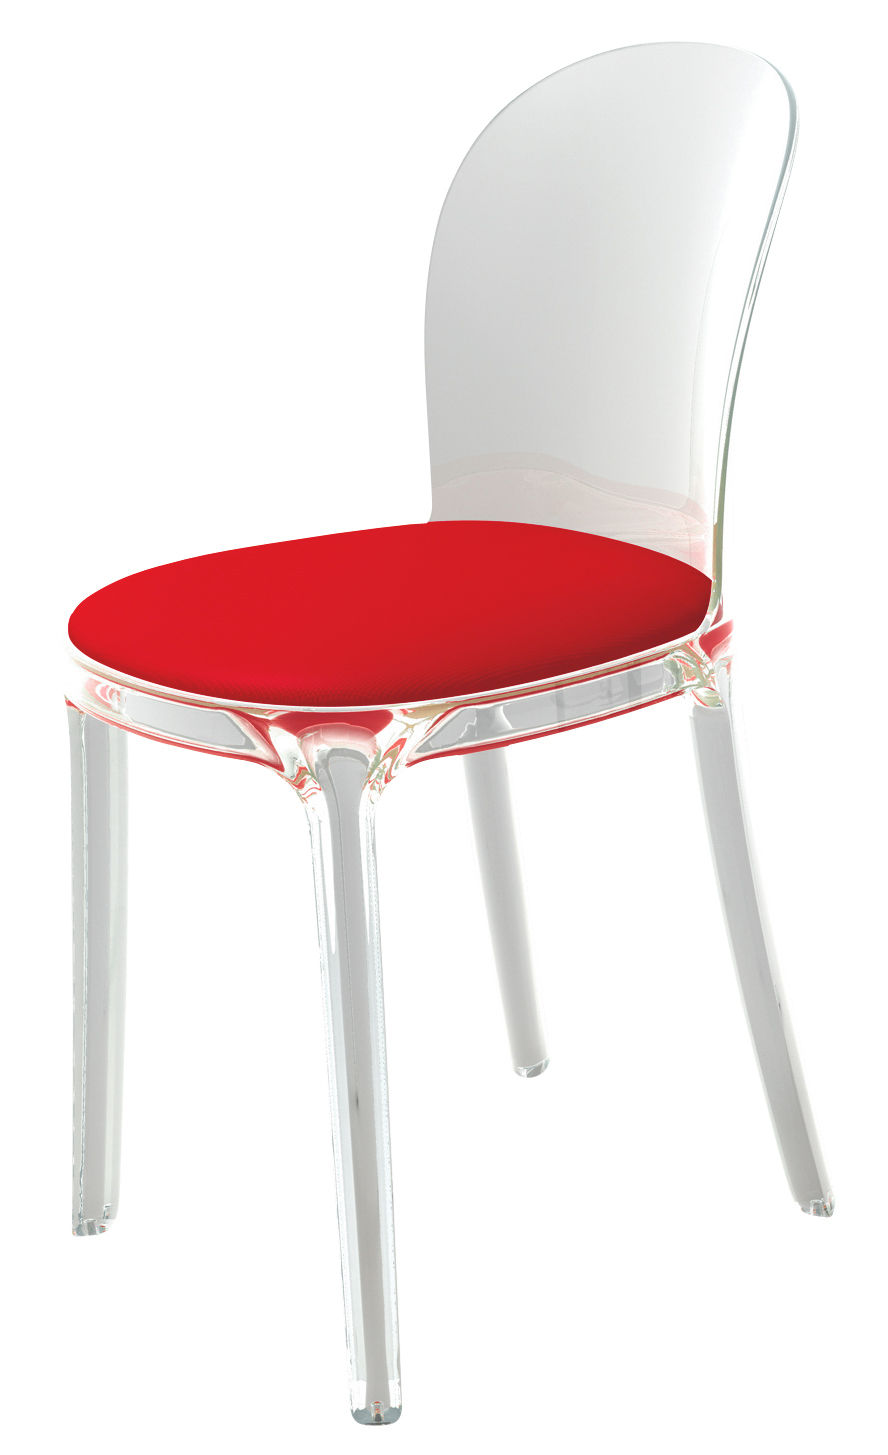 Furniture - Chairs - Vanity Chair Padded chair - Transparent polycarbonate & fabric by Magis - Clear / Red - Fabric, Polycarbonate